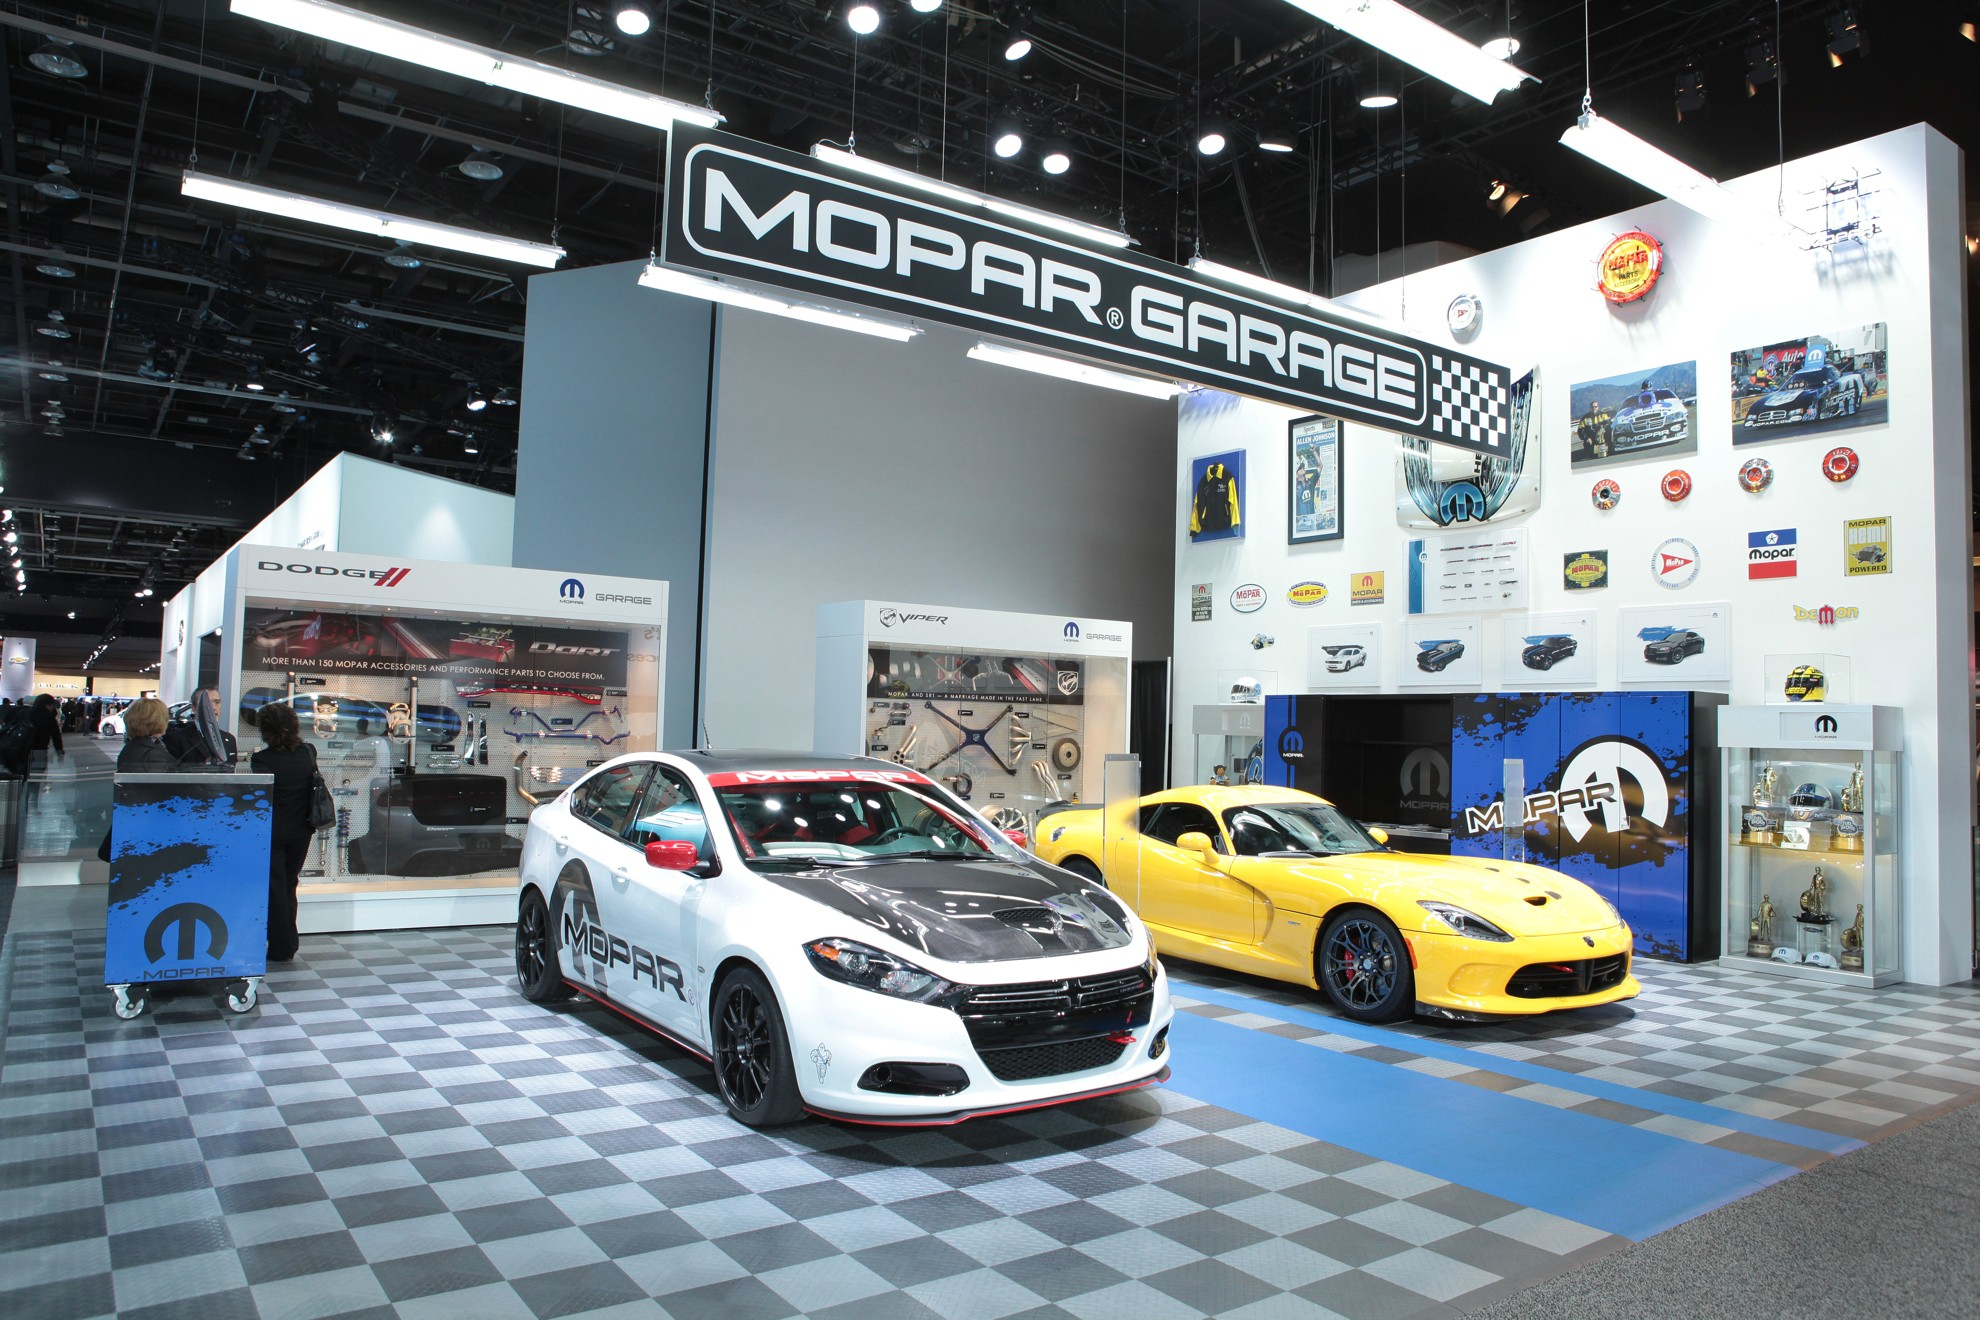 Accessories For Garage Mopar Garage Is A Must See At The North American International